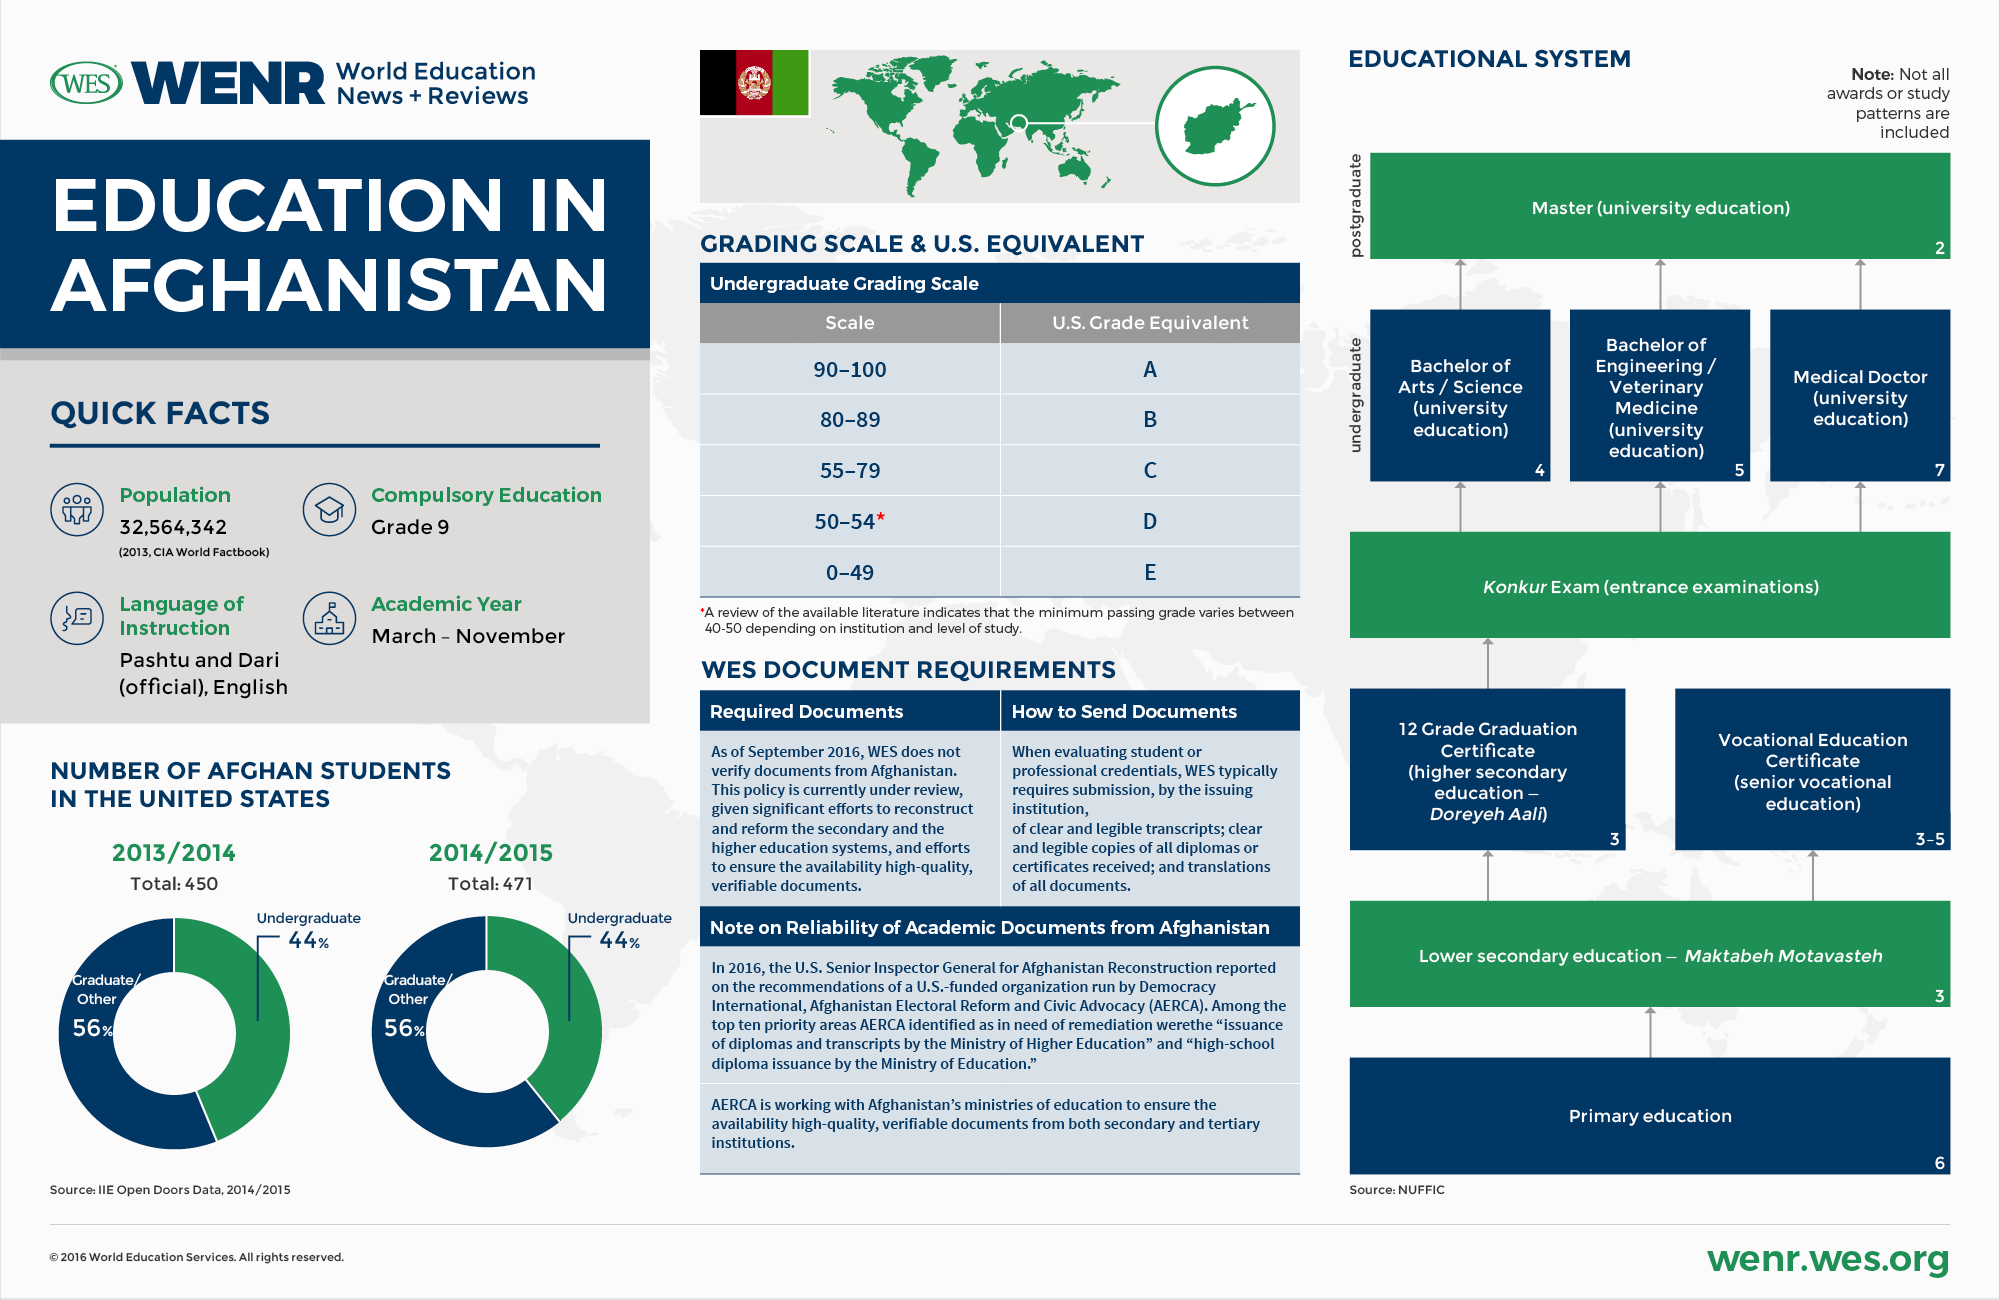 Education in Afghanistan - WENR